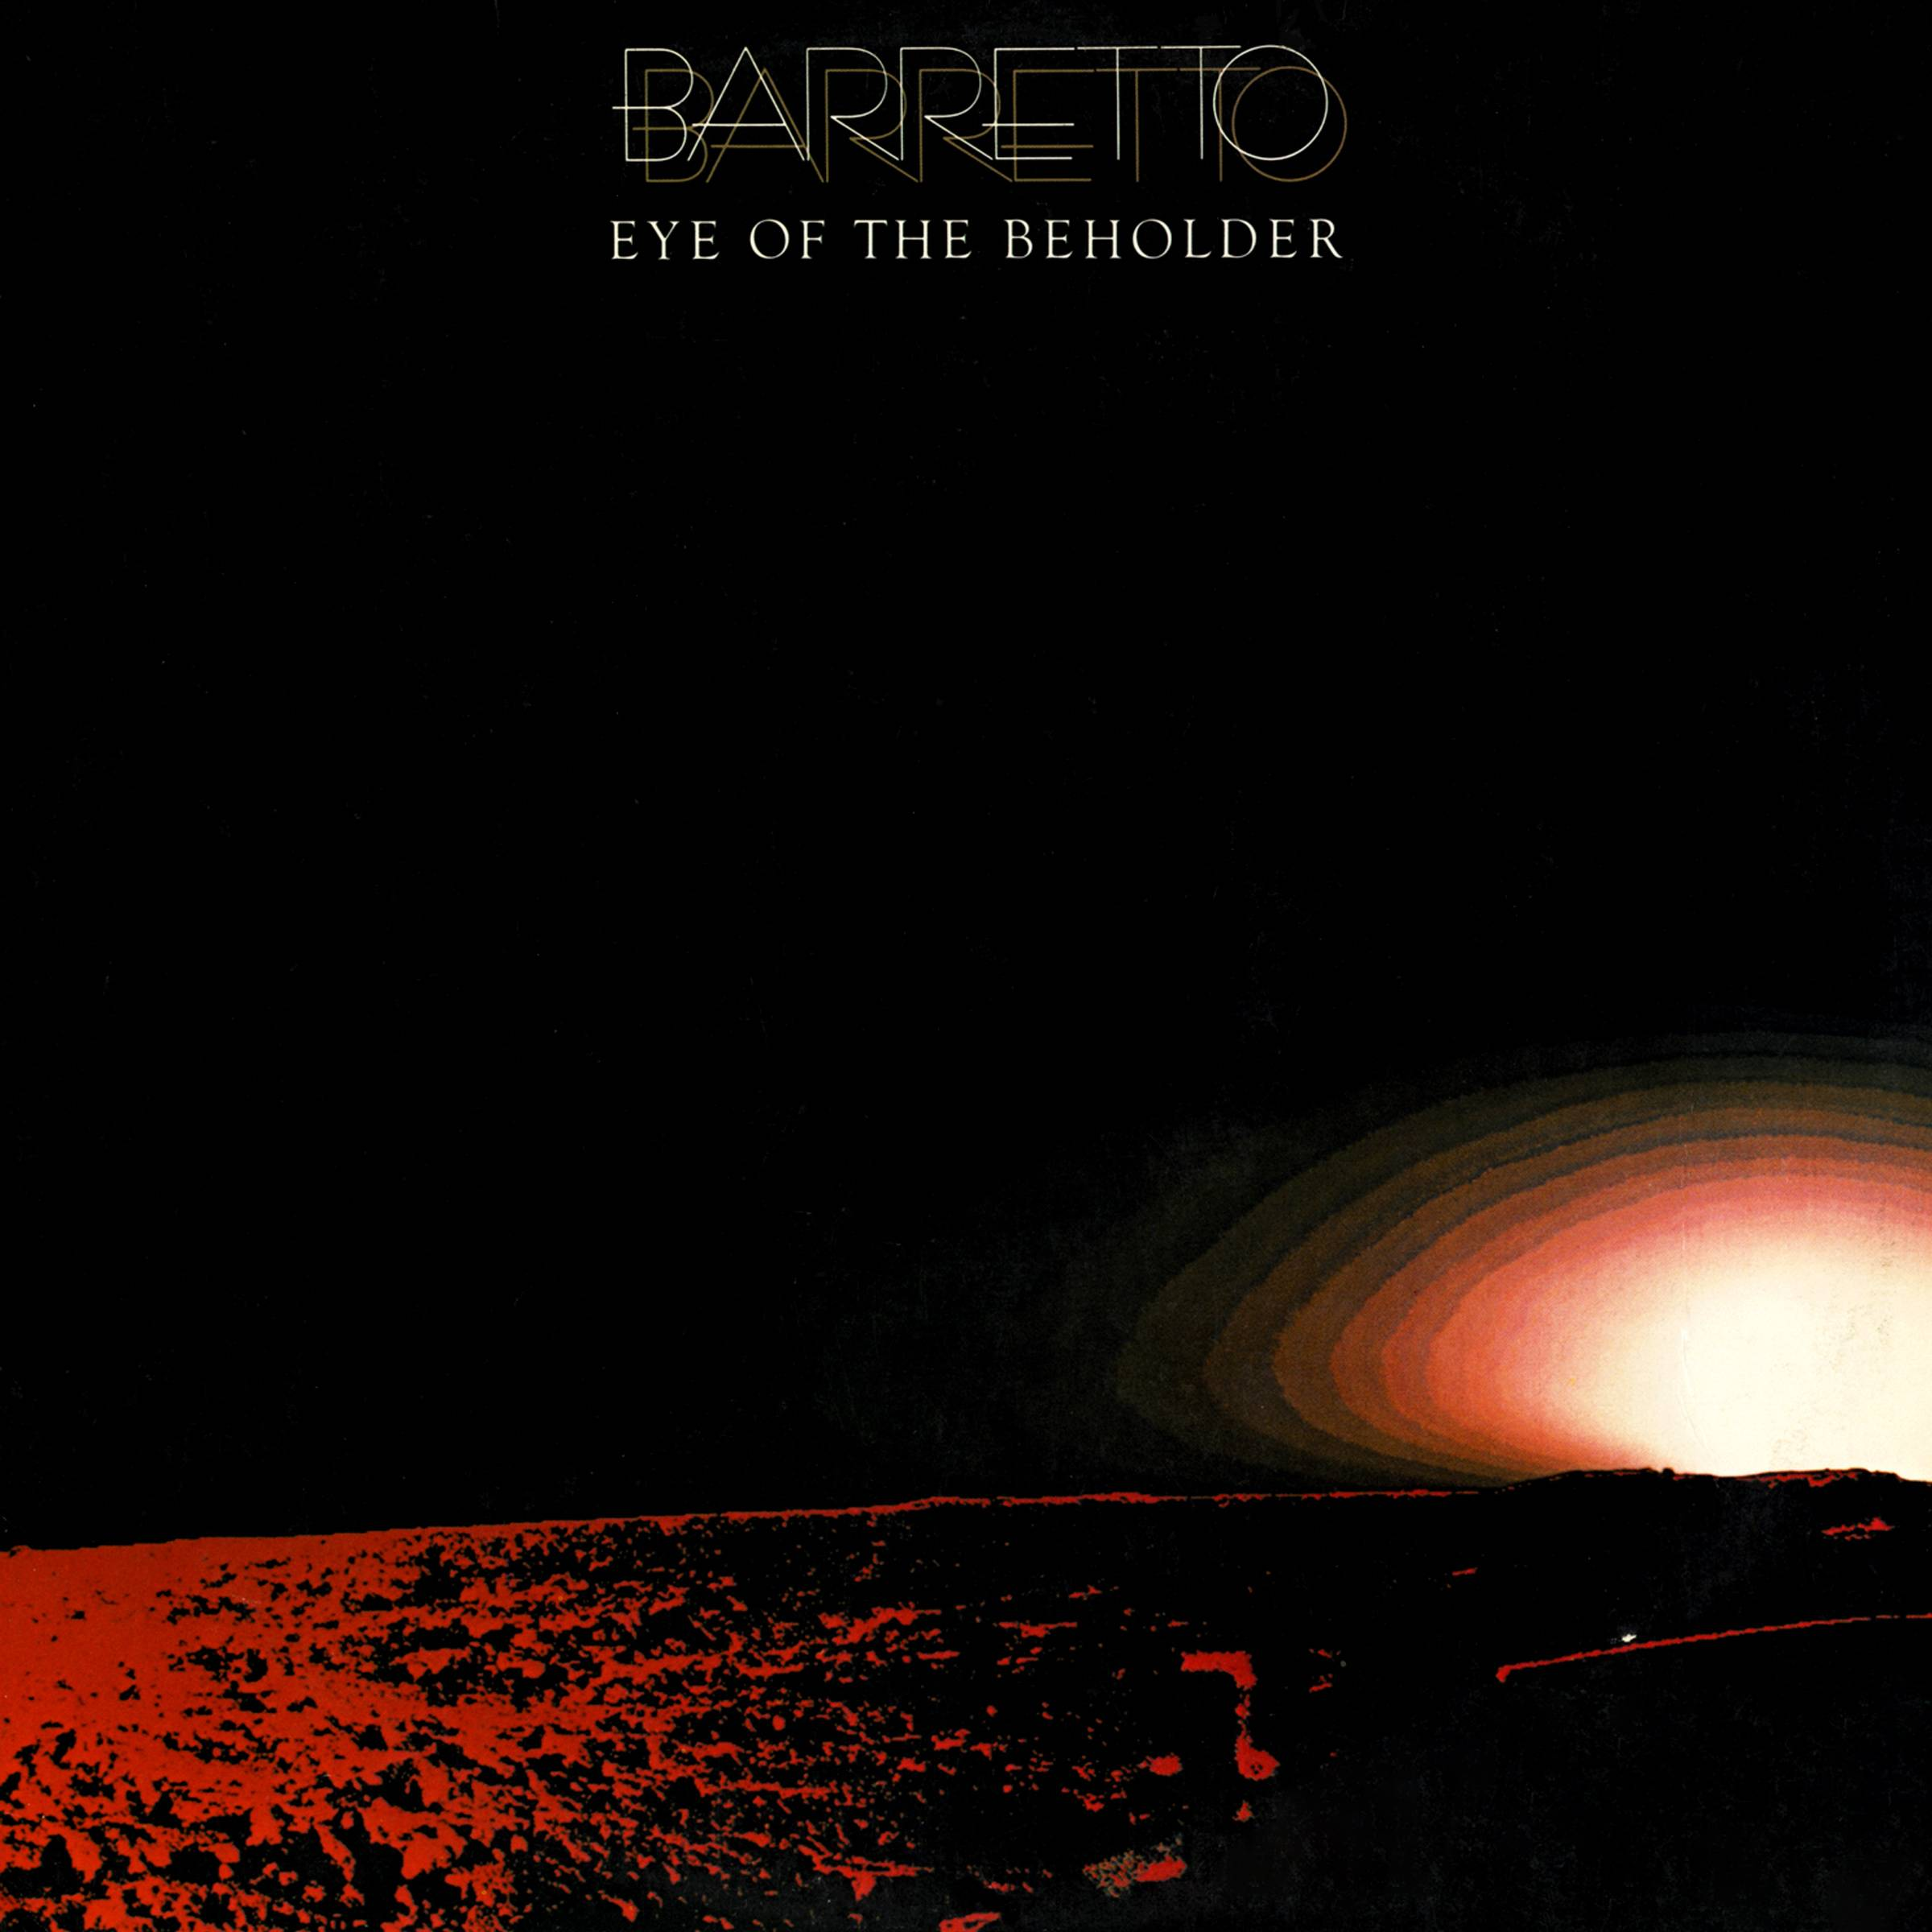 Ray Barretto - Eye Of The Beholder (1977/2012) [Official Digital Download 24-bit/192kHz]